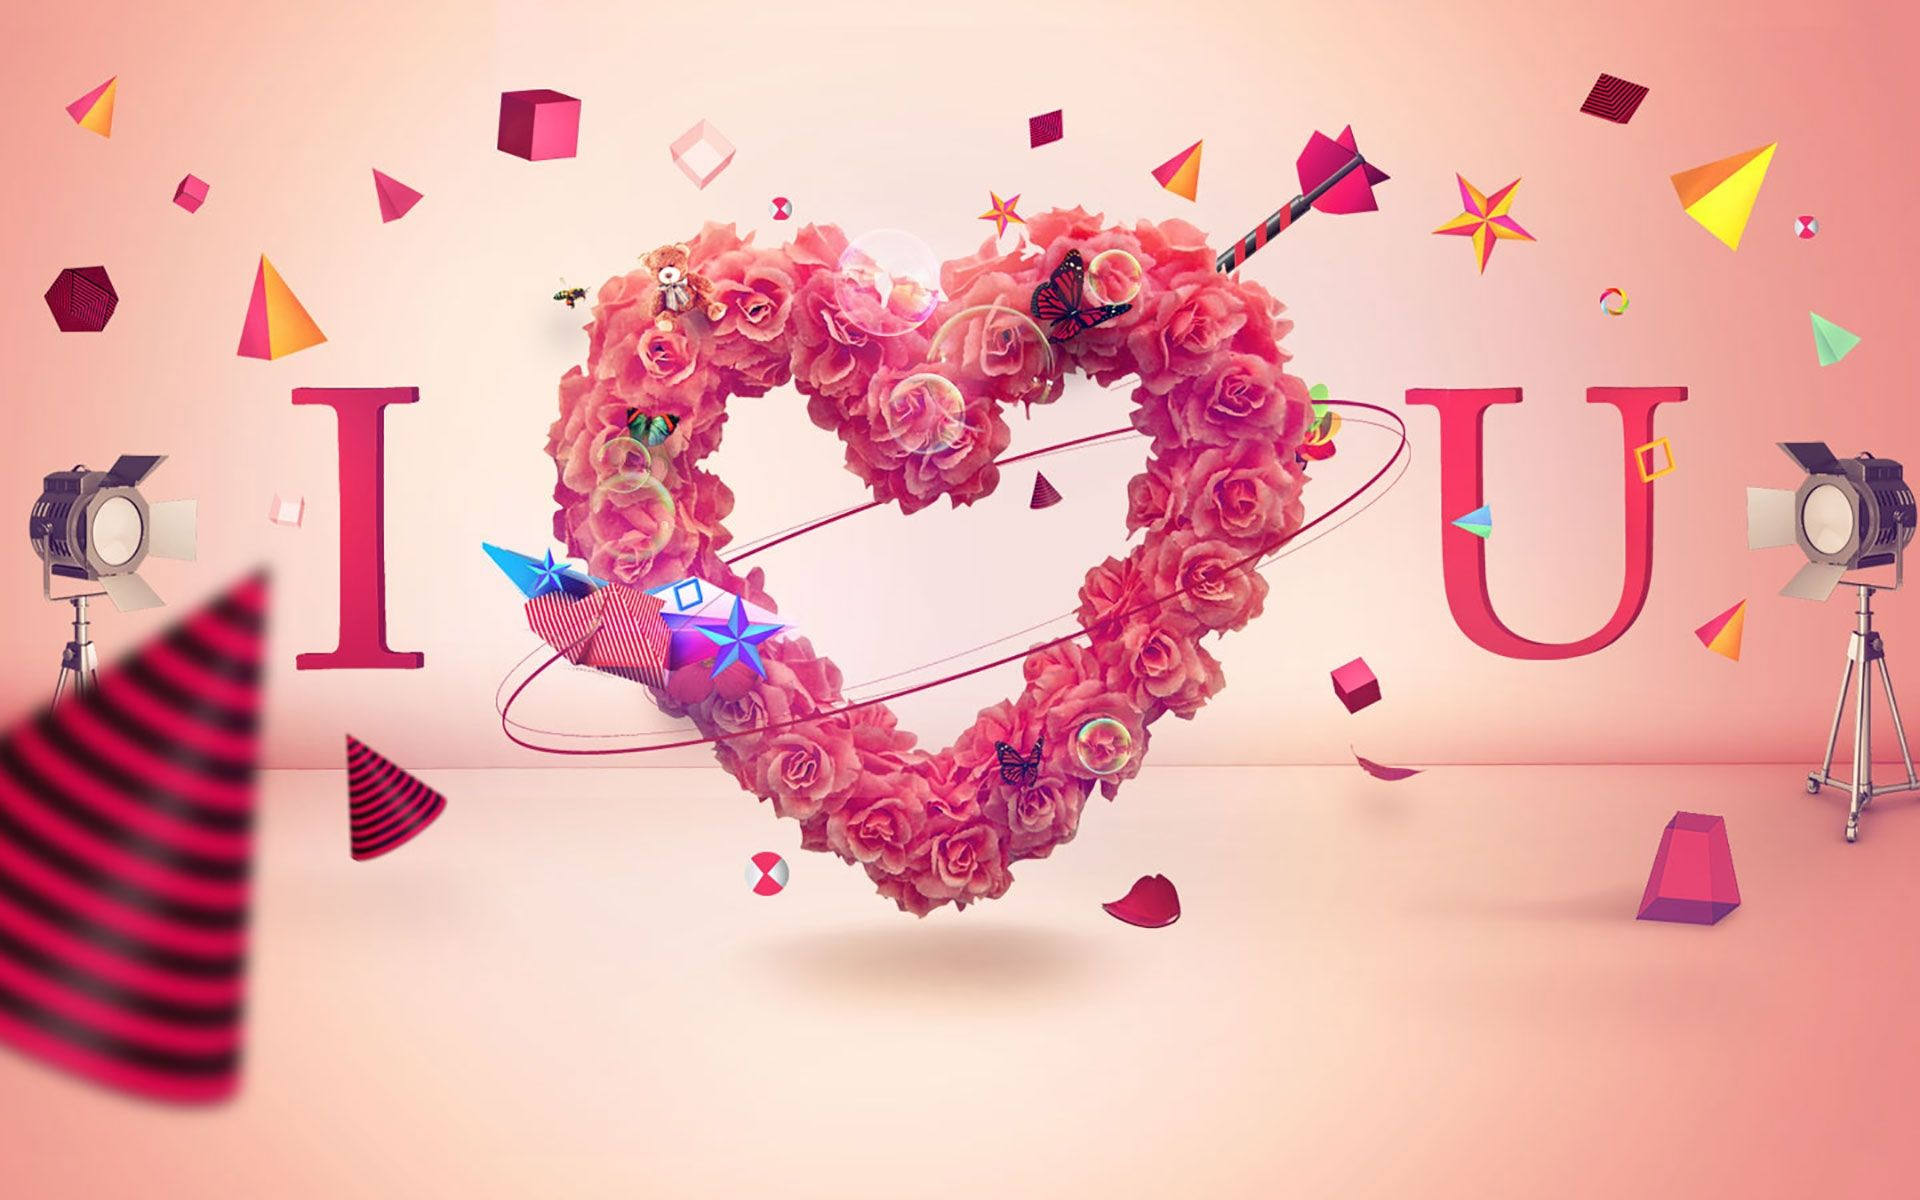 wallpaper of i love you angel hd download wallpaper of i love you angel download